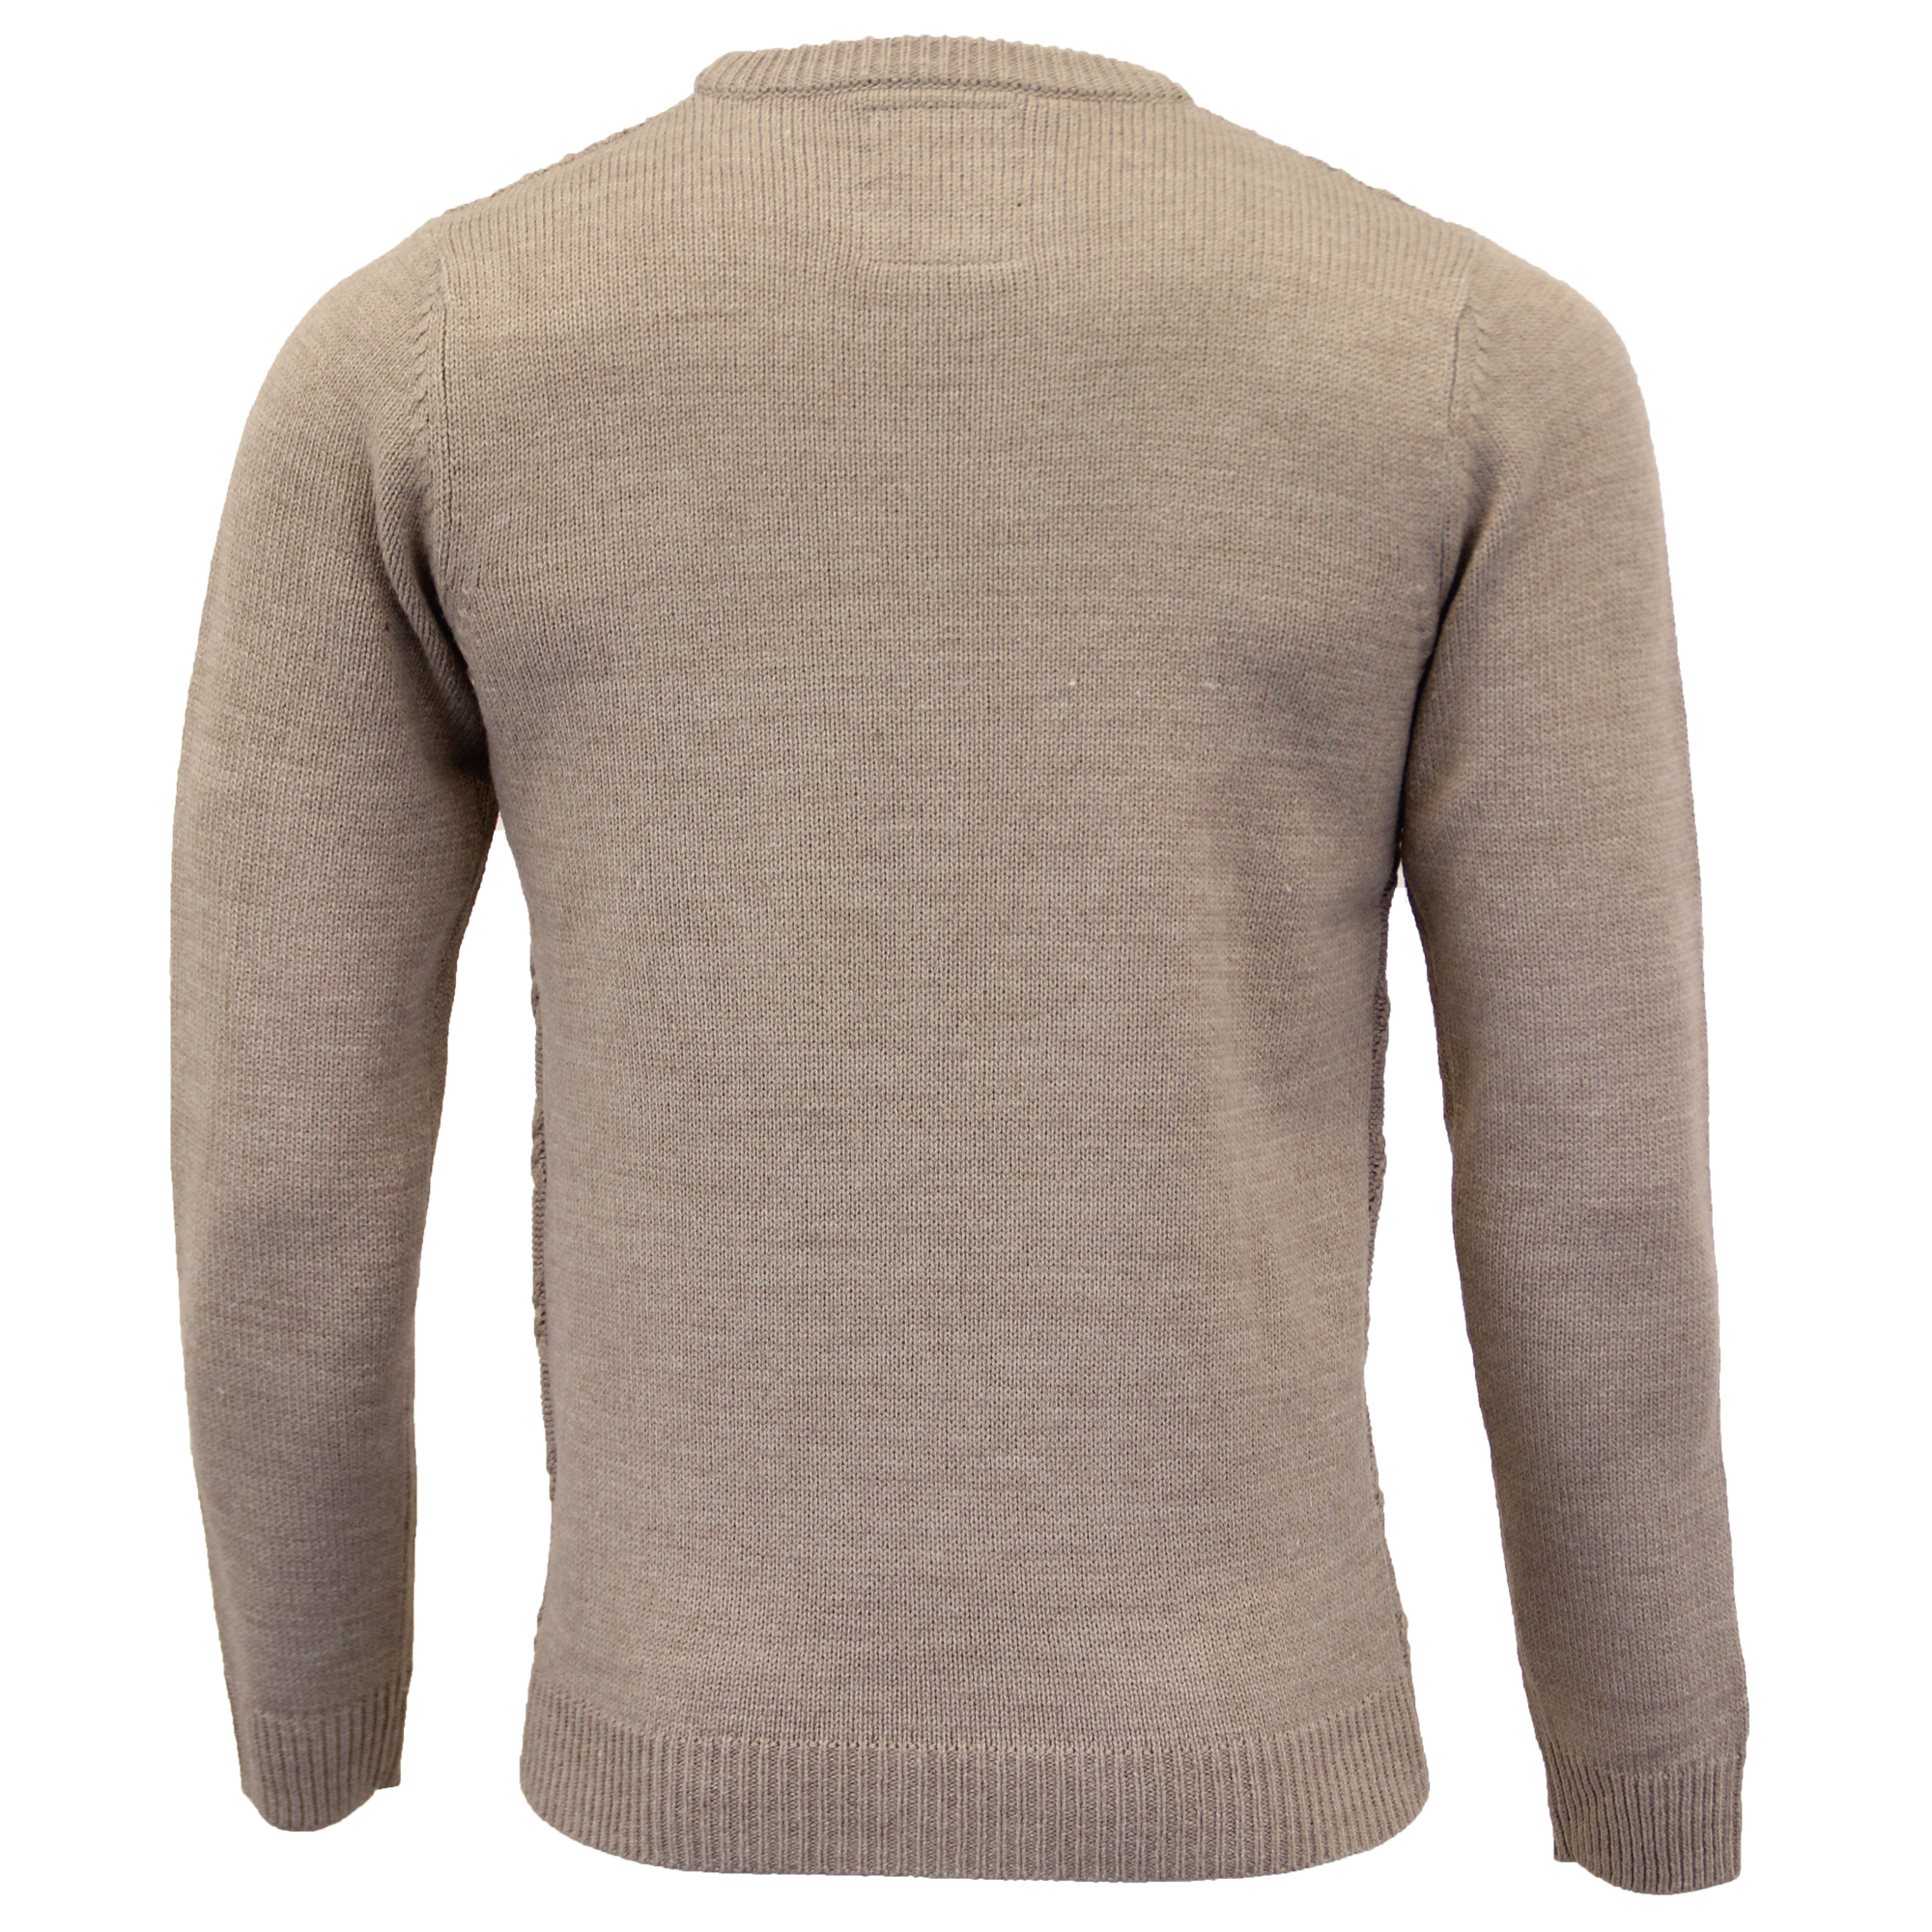 Mens Jumpers Threadbare Knitted Sweater Pullover Top Crew Neck Casual Winter New